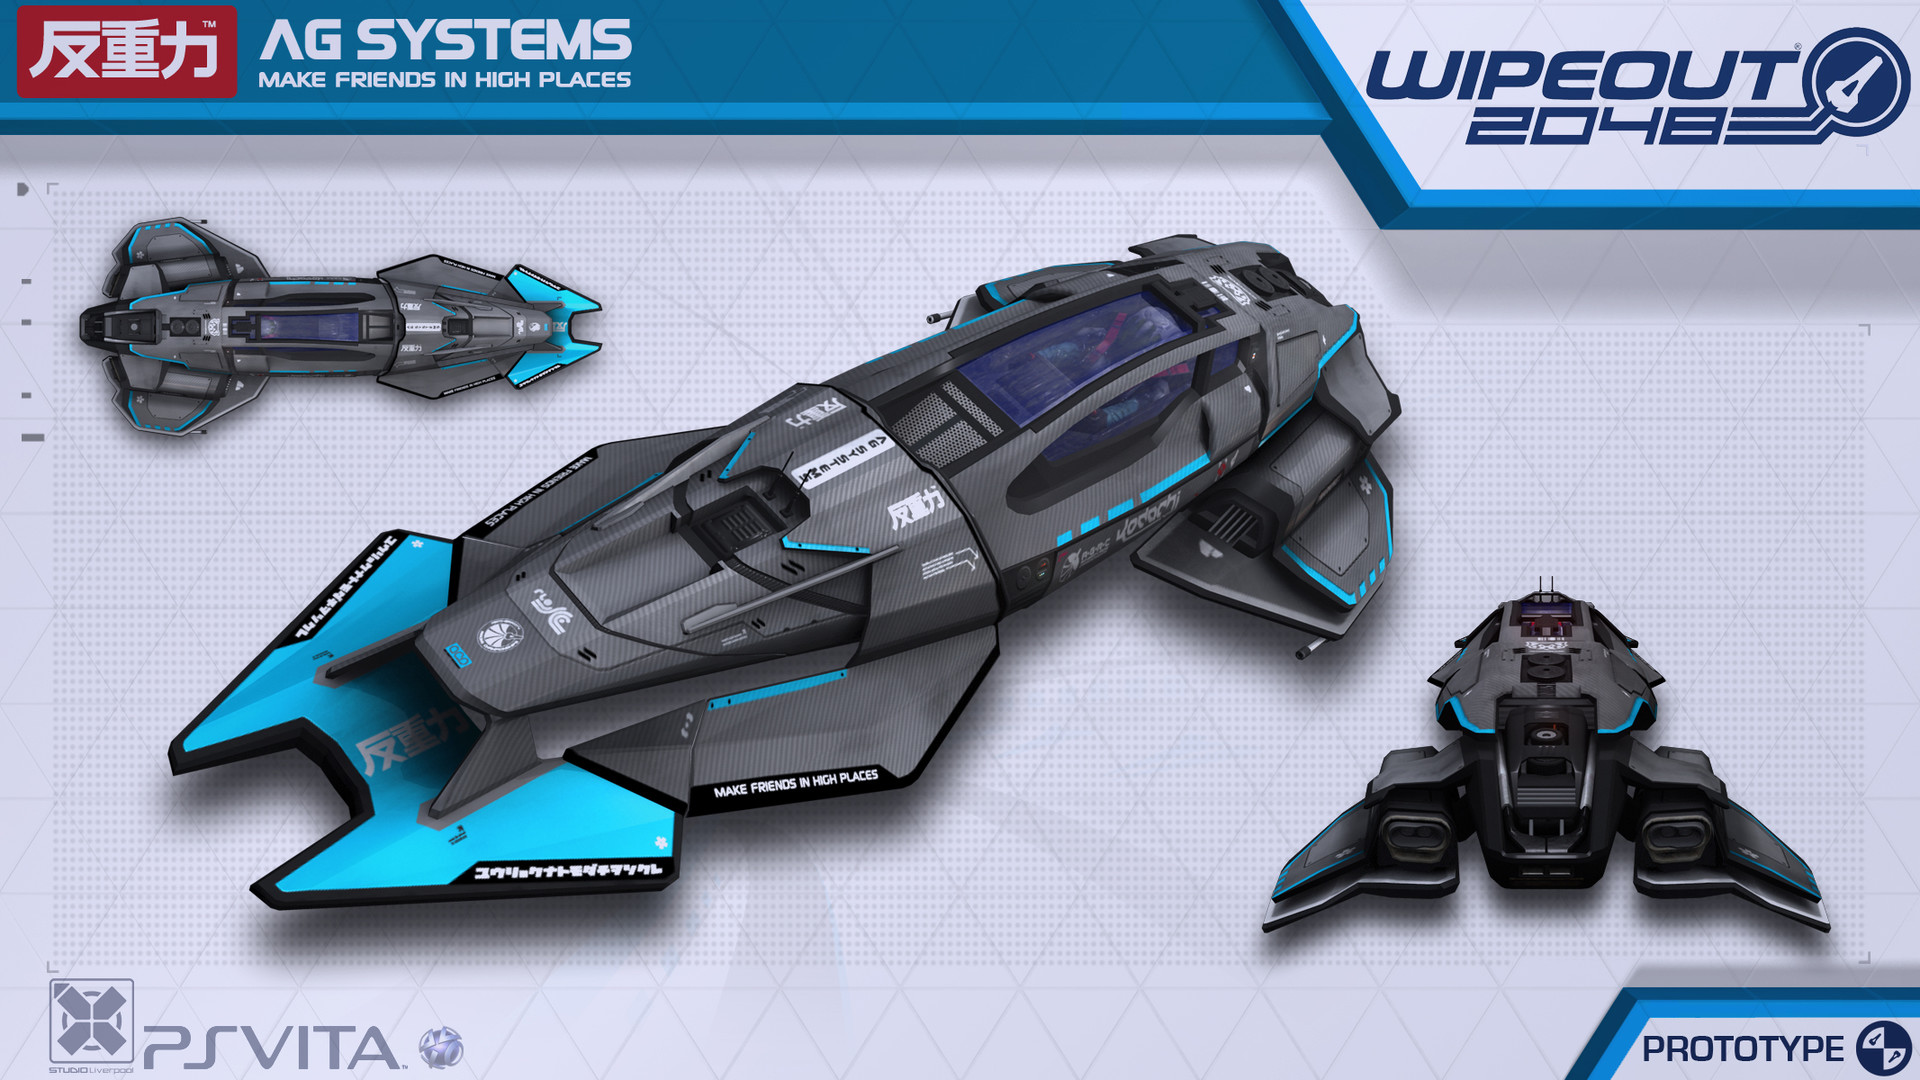 Dean ashley hr wipeout2048 agsystems prototype